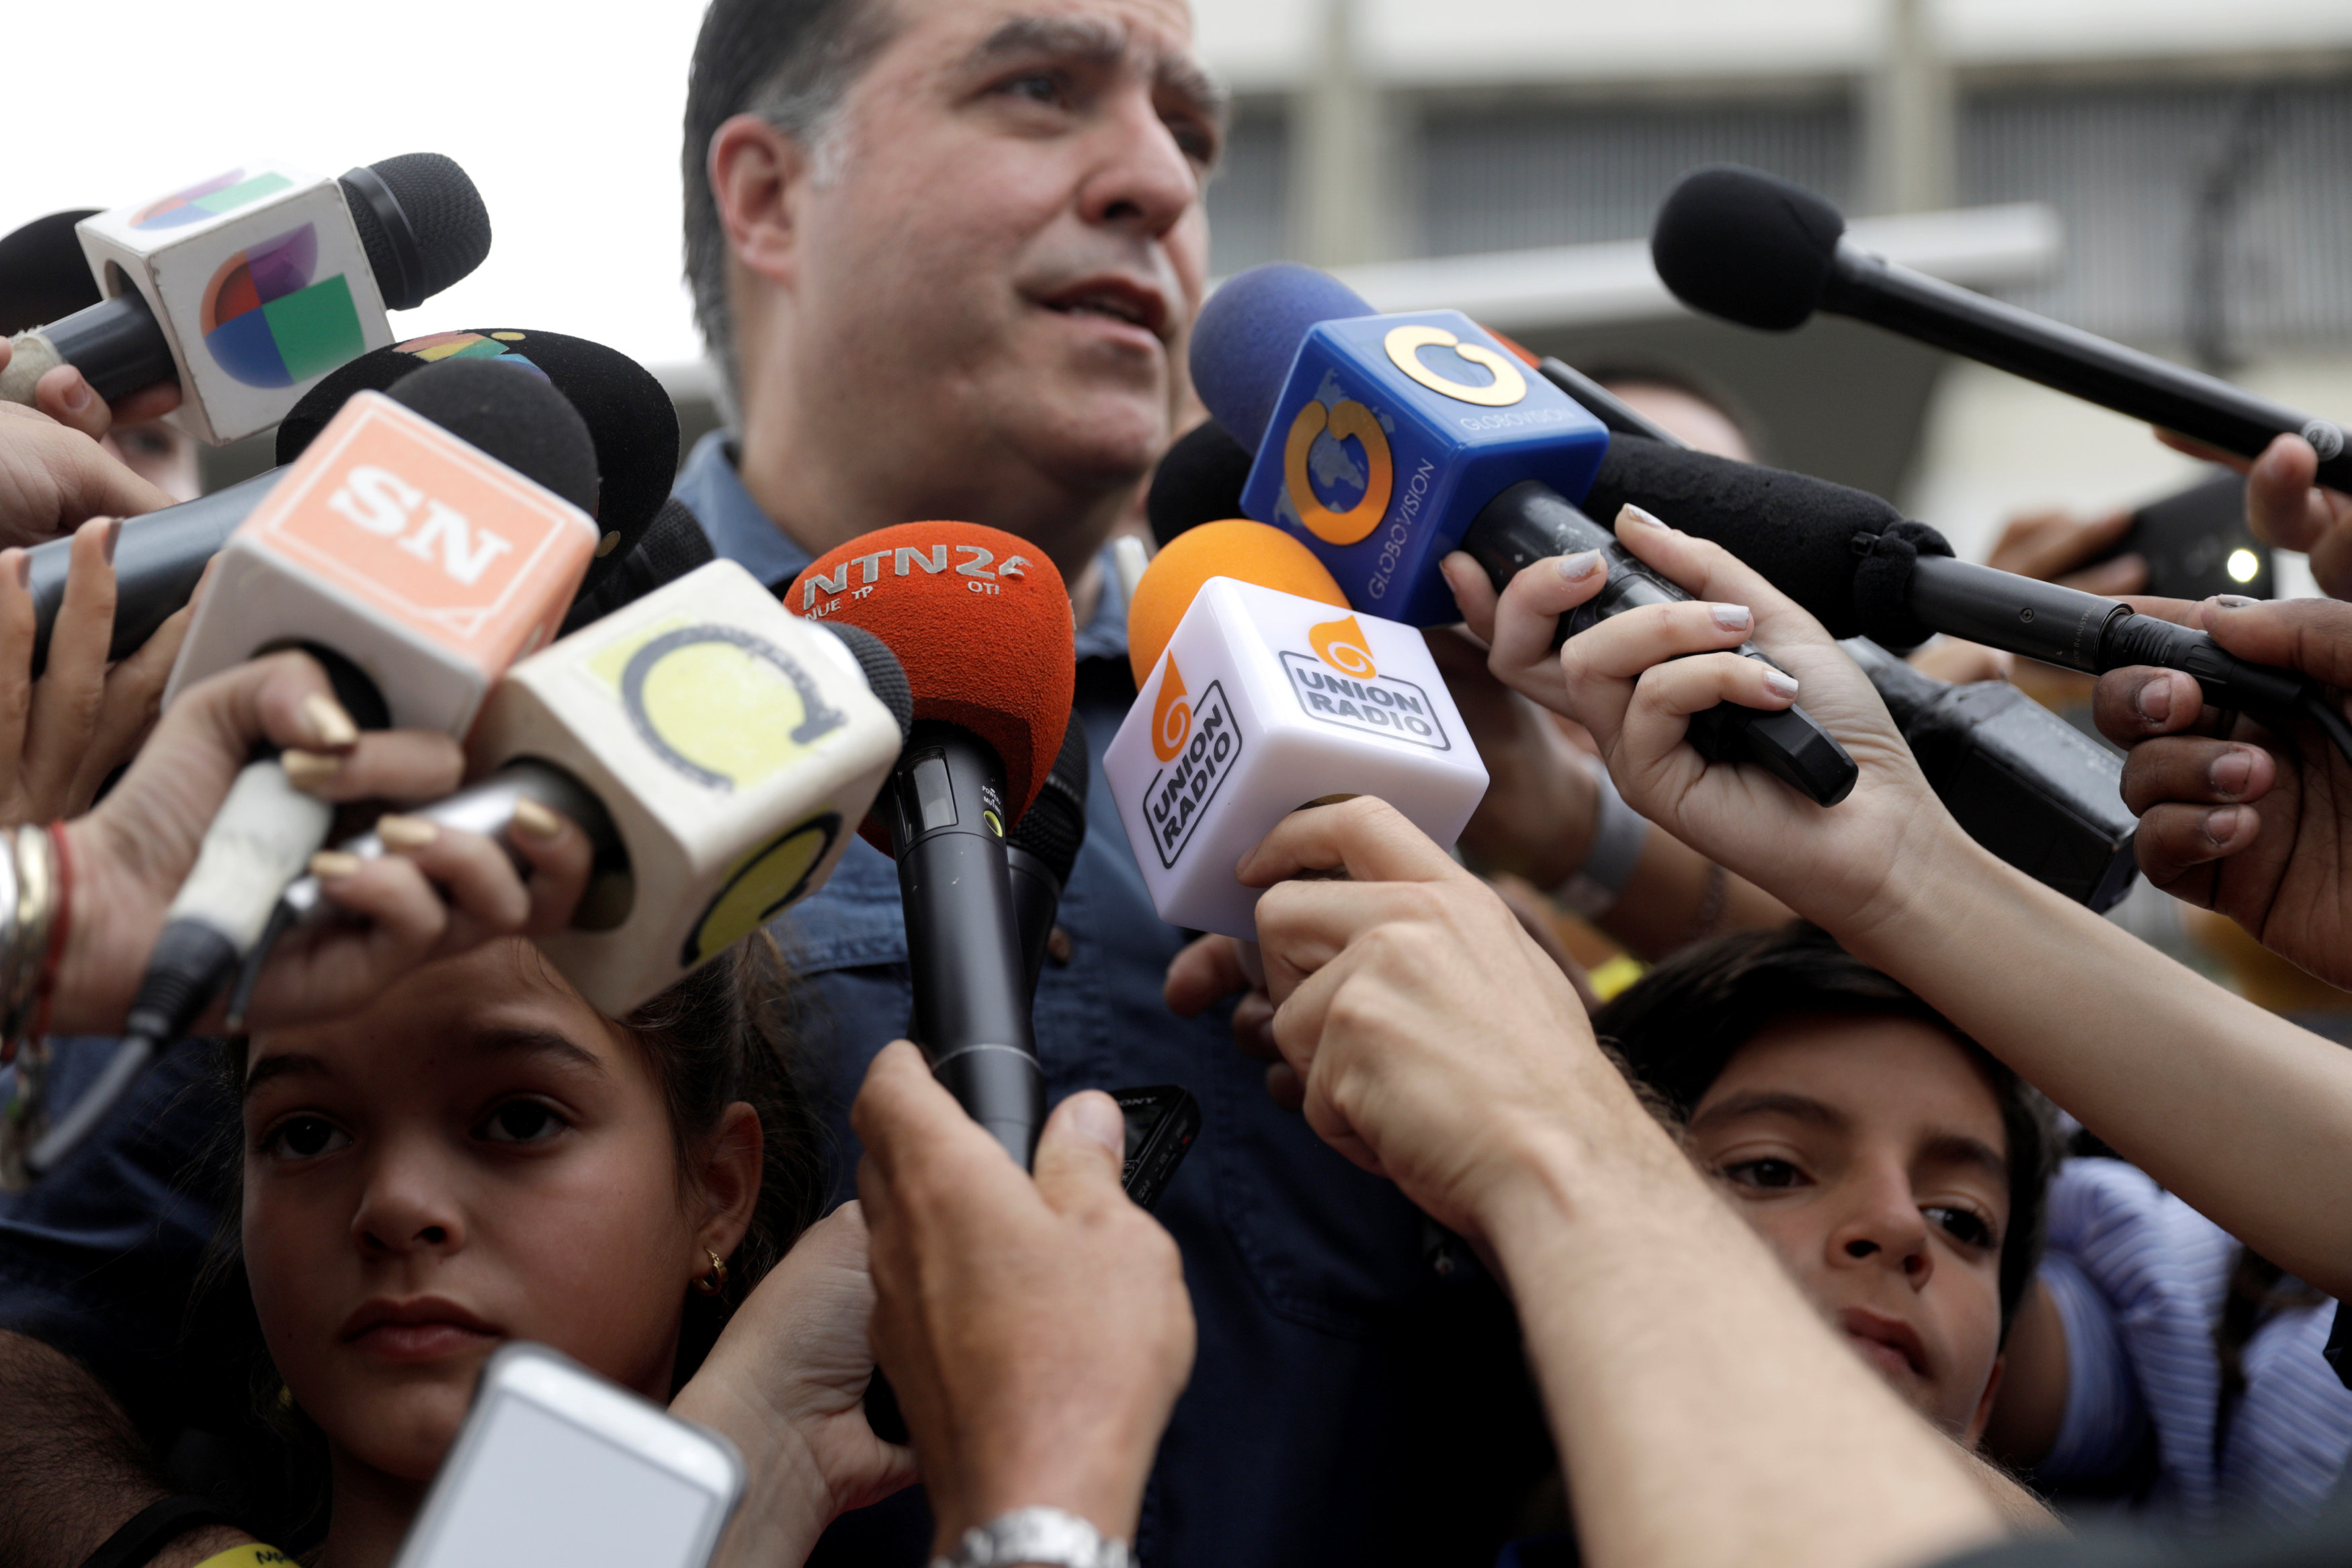 Leaders of Venezuela's bruised opposition to travel abroad to denounce 'voting fraud'